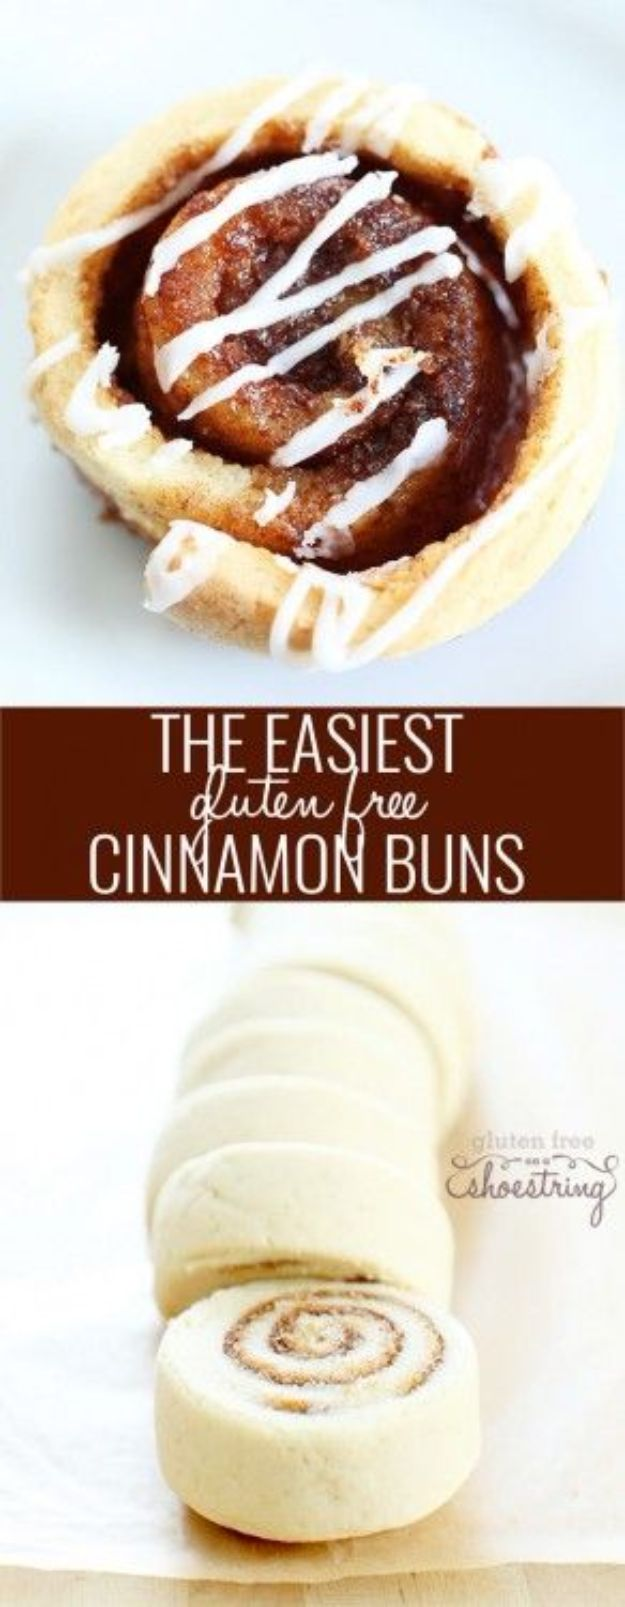 Gluten Free Desserts - Yeast Free, Gluten Free Cinnamon Buns - Easy Recipes and Healthy Recipe Ideas for Cookies, Cake, Pie, Cupcakes, Cheesecake and Ice Cream - Best No Sugar Glutenfree Chocolate, No Bake Dessert, Fruit, Peach, Apple and Banana Dishes - Flourless Christmas, Thanksgiving and Holiday Dishes http://diyjoy.com/gluten-free-desserts